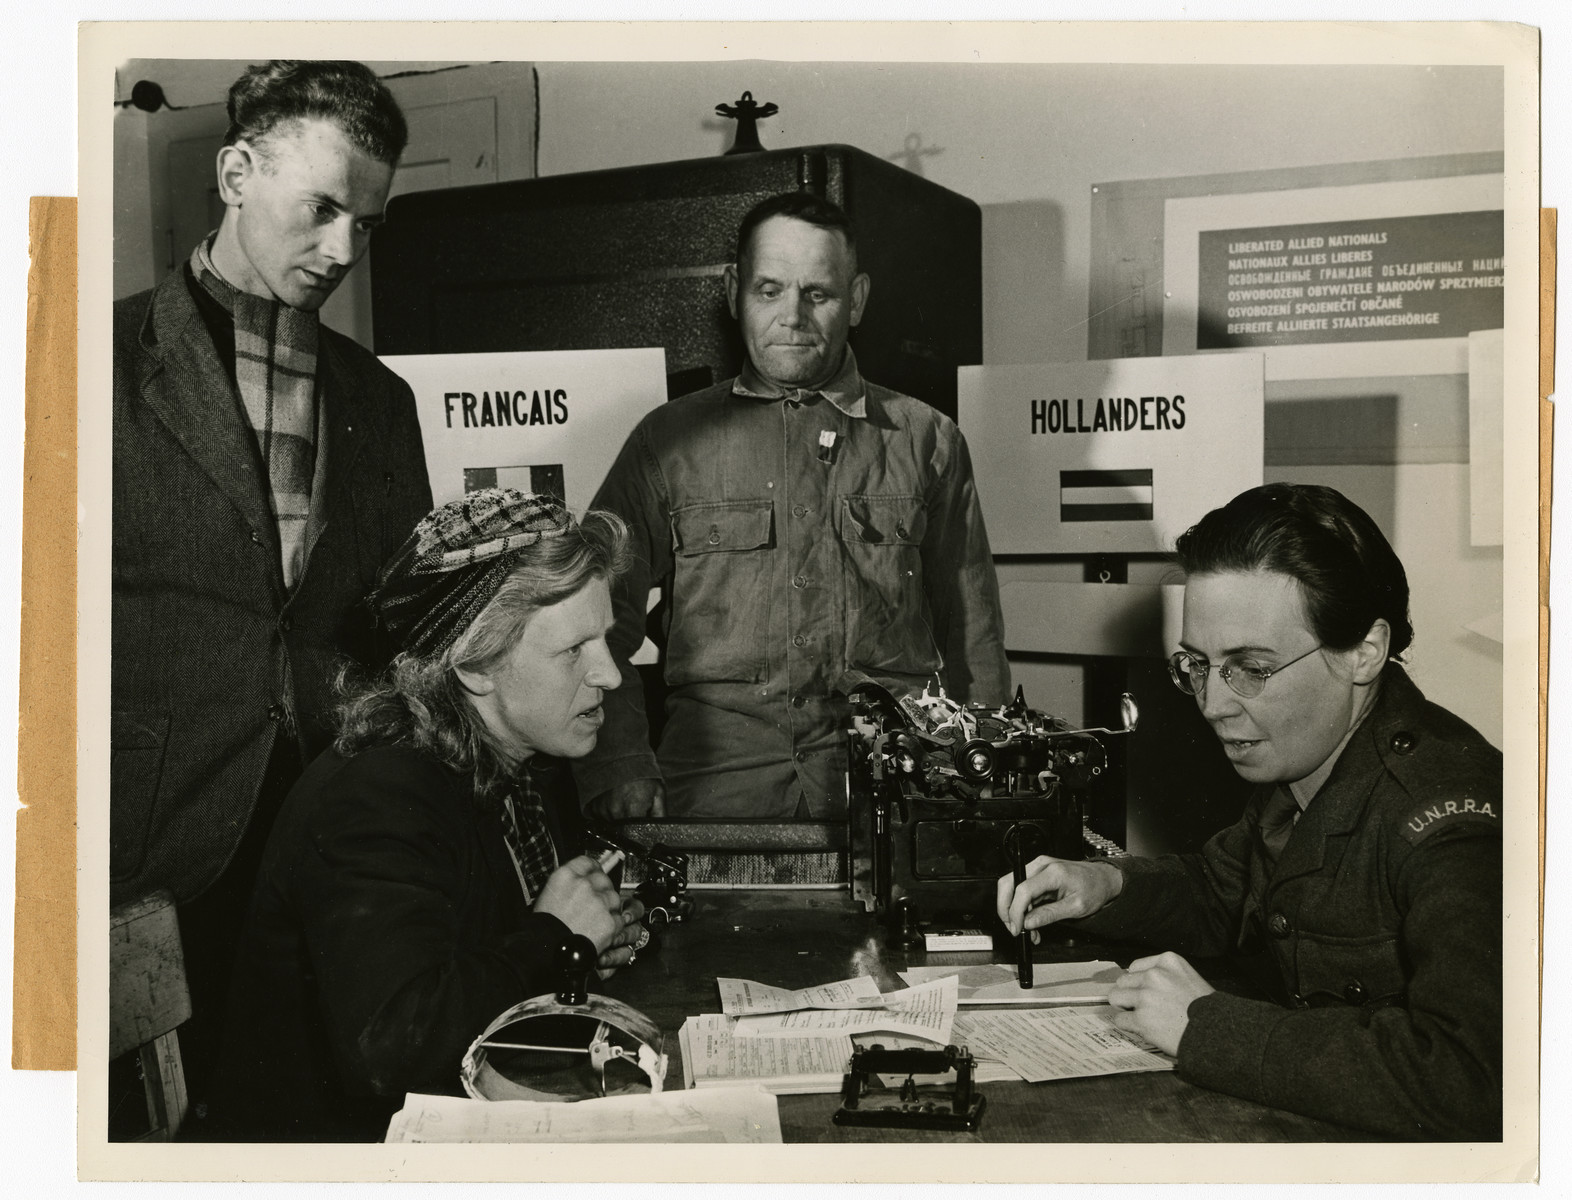 A Swiss woman speaks with a United Nations Relief and Rehabilitation Administration member about her capture and servitude during the Nazi Regime.   The official caption reads: Allies Speed Repatriation of Displaced Persons Inside Germany Liberated by the Allied armies in Germany, more than four million men, women and children, former slaves of the Nazi war machine, are free to return to their native lands as soon as repatriation machinery makes it possible. Meanwhile, these displaced persons are being gathered from the fields, factories and roadsides of Germany by Military Government authorities and placed in amps where they are registered, fed, clothed, sheltered and given medical attention.   Persons of almost a dozen nationalities, living in separate camps wherever possible, are guided along democratic lines in the operation of their communities. U.S. Army oficcials set up the displaced persons centers, guard the exterior of the camps and turn over the guidance problems to international teams representing the United Nations Relief and Rehabilitation Administrations. Once all the displaced persons are repatriated, UNRRA's job in Germany is finished, as it has nothing to do with Germans or military activities.   The Governments of Belgium, Holland, France and Luxembourg, have already brought thousands of their nationals home. By May 17, 1945, nearly 500,000 liberated prisoners-of-war and political deportees were evacuated from German camps. The group included 604,950 Frnech, 120,140 British and 62,981 Americans. All the Americans, 100,000 Frenchmen and 119,000 Britons were evacuated by air.   THIS PHOTO SHOWS: A Swiss woman who said she wandered across the German frontier near her home in 1941 and was immediately picked up by SS men to be placed into servitude tells her story to an UNRRA representative as two other displaced persons look on at Fort Ehrebritstein.